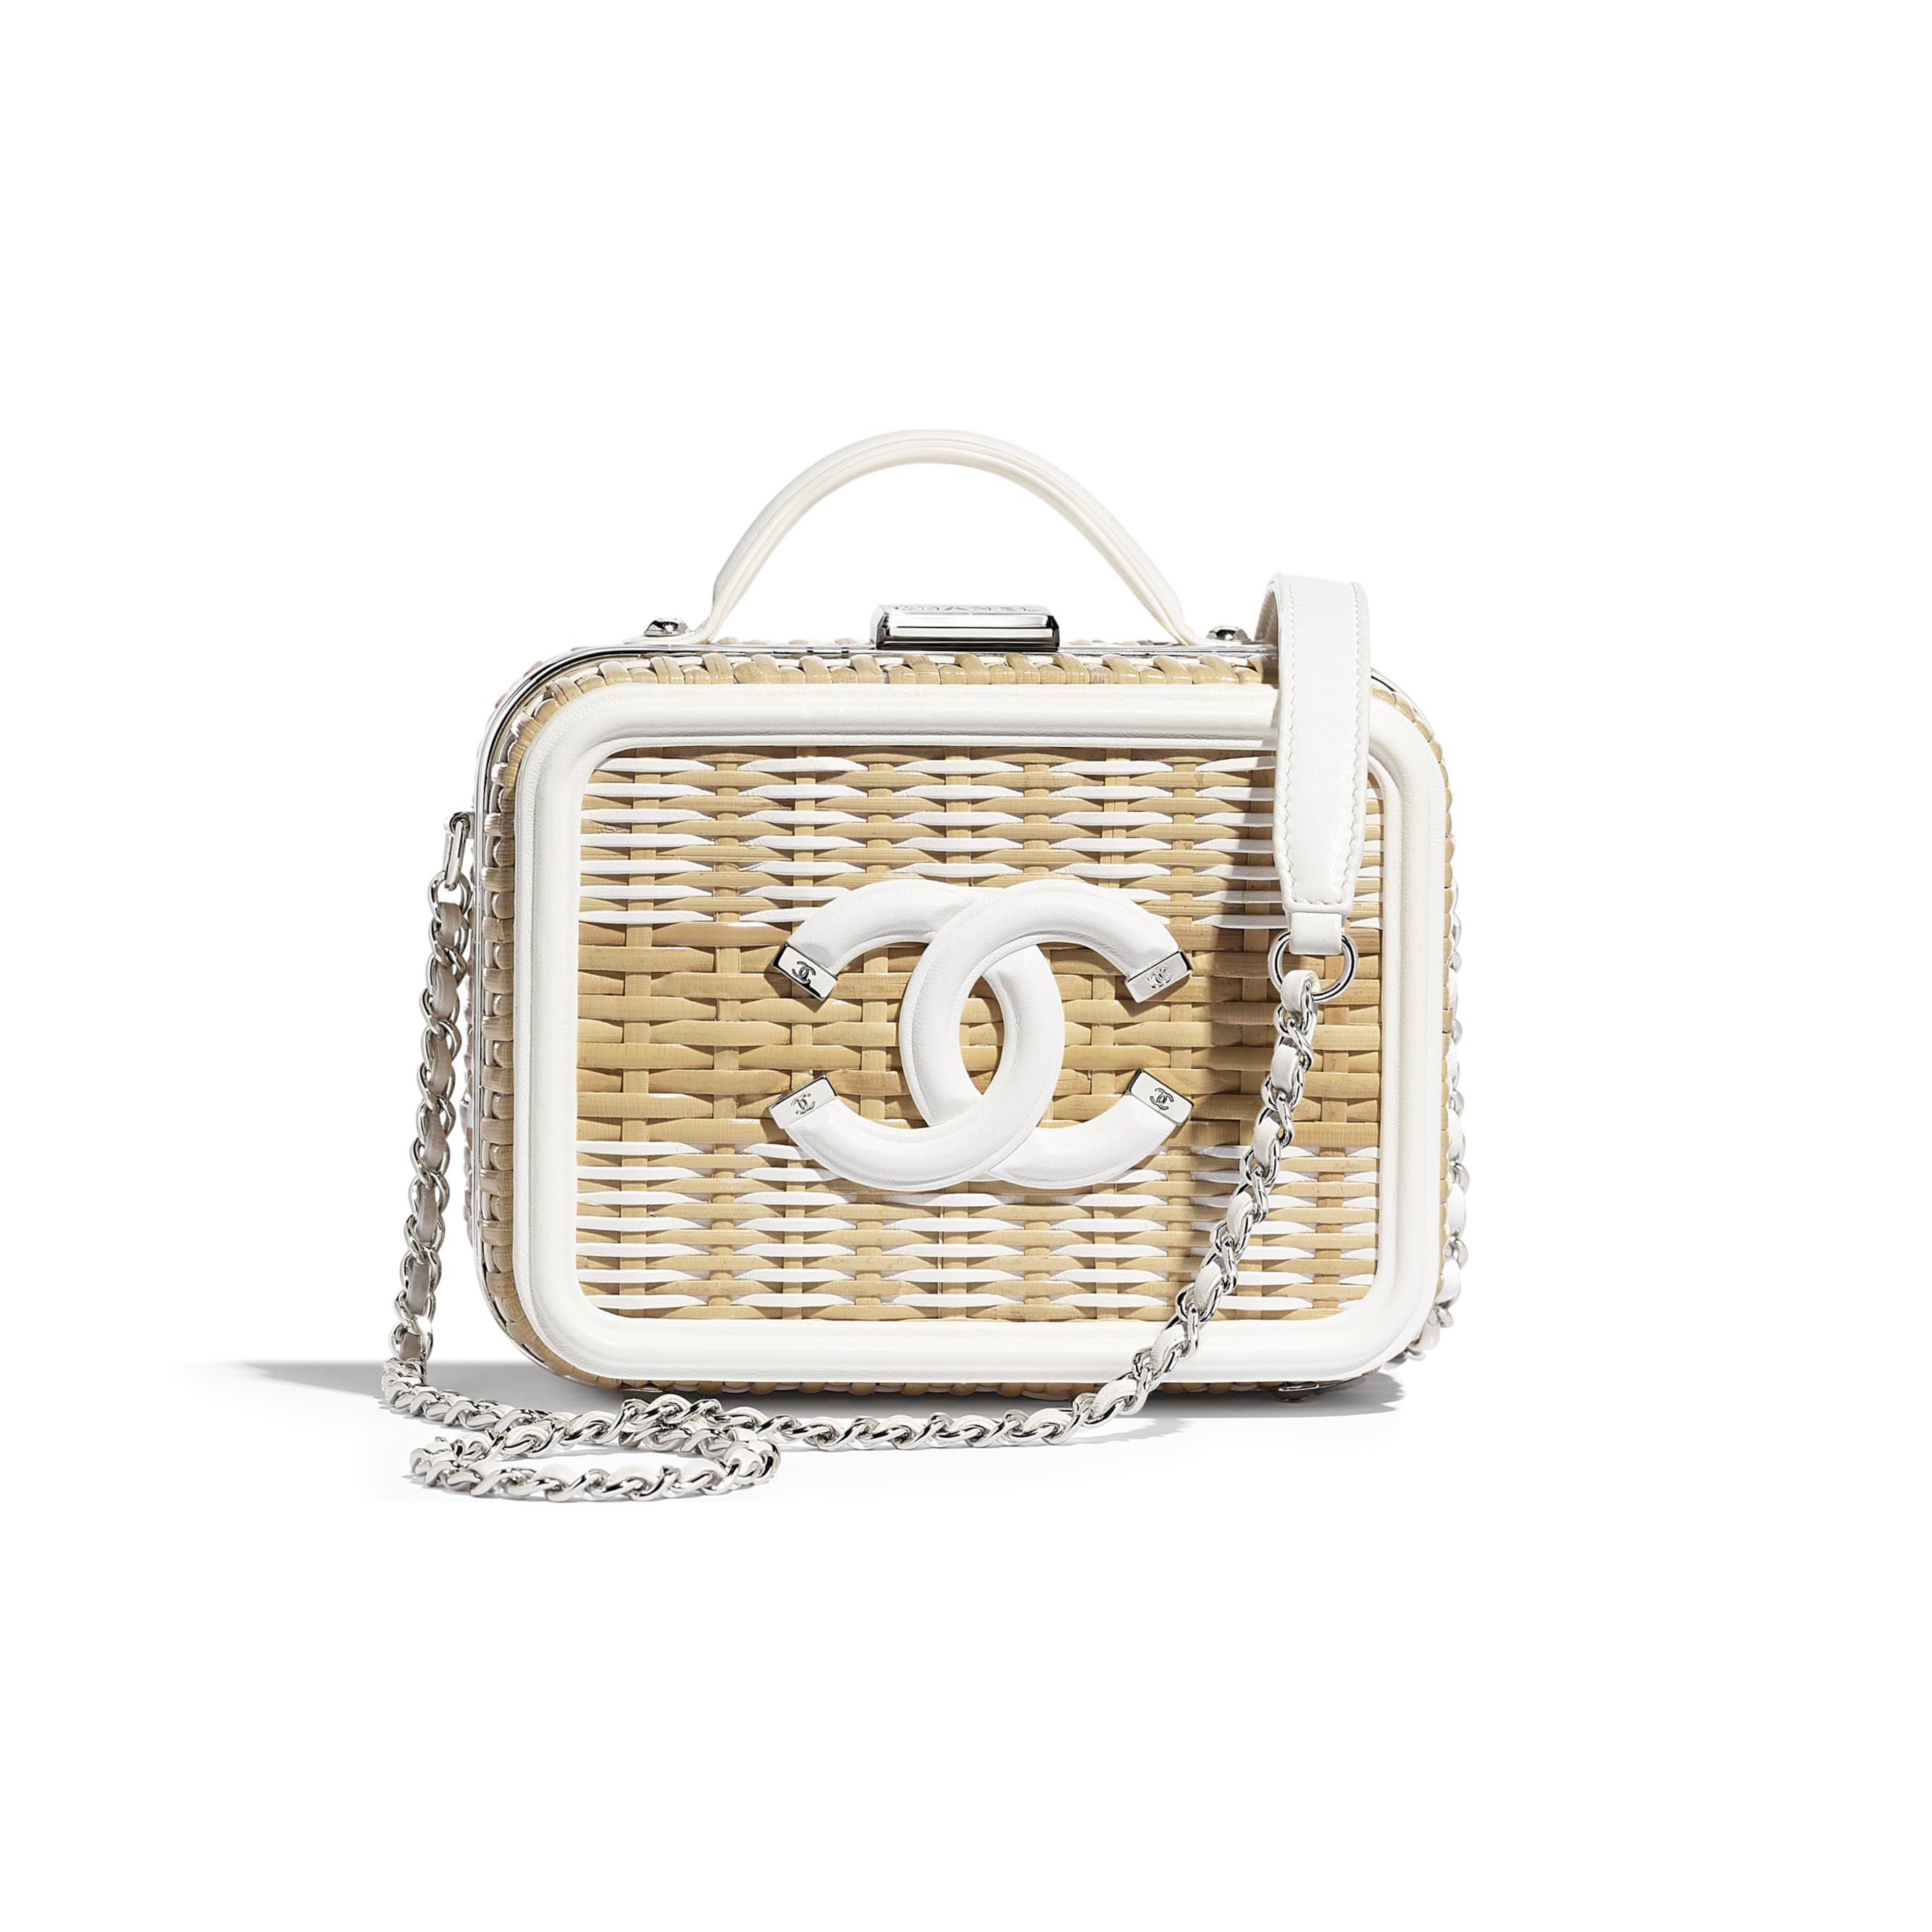 Small Vanity Case - Beige & White - Rattan, Calfskin & Silver-Tone Metal - Default view - see standard sized version